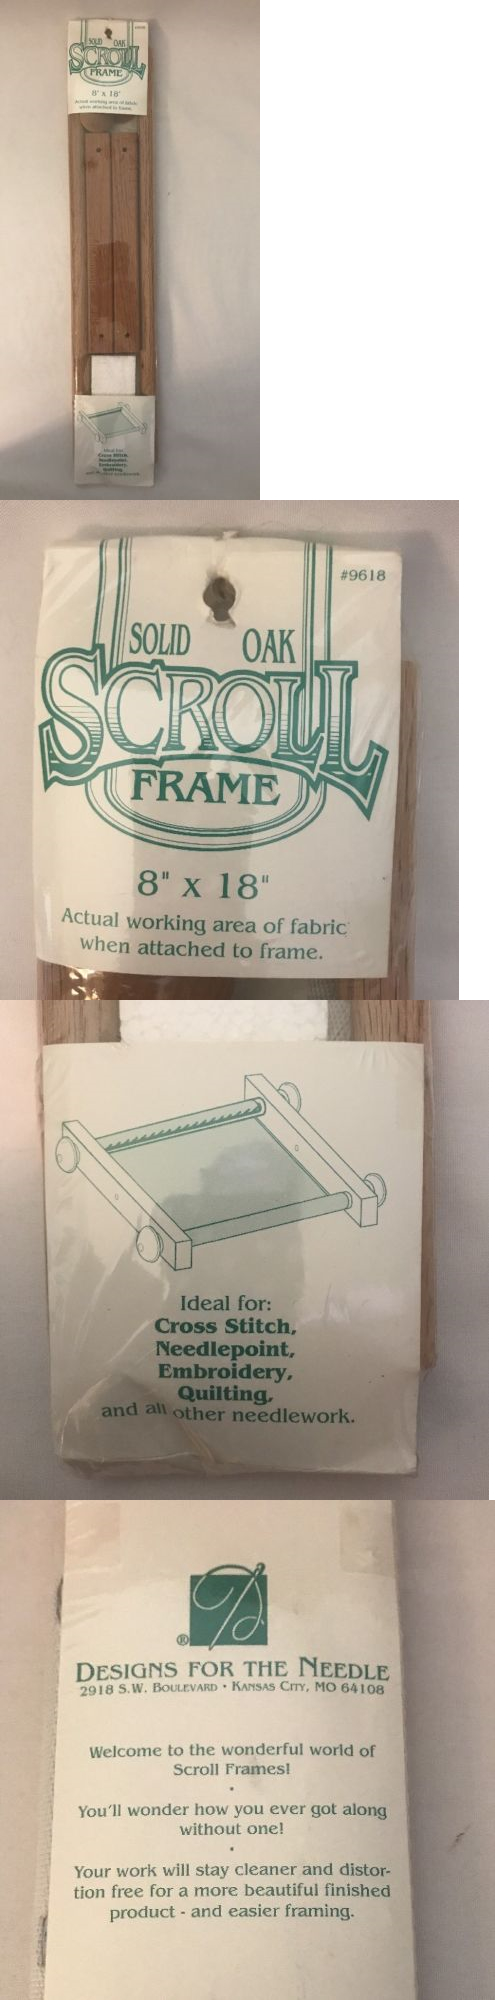 Other Embroidery 75567: Solid Oak Scroll Frame #9618 Cross Stitch ...